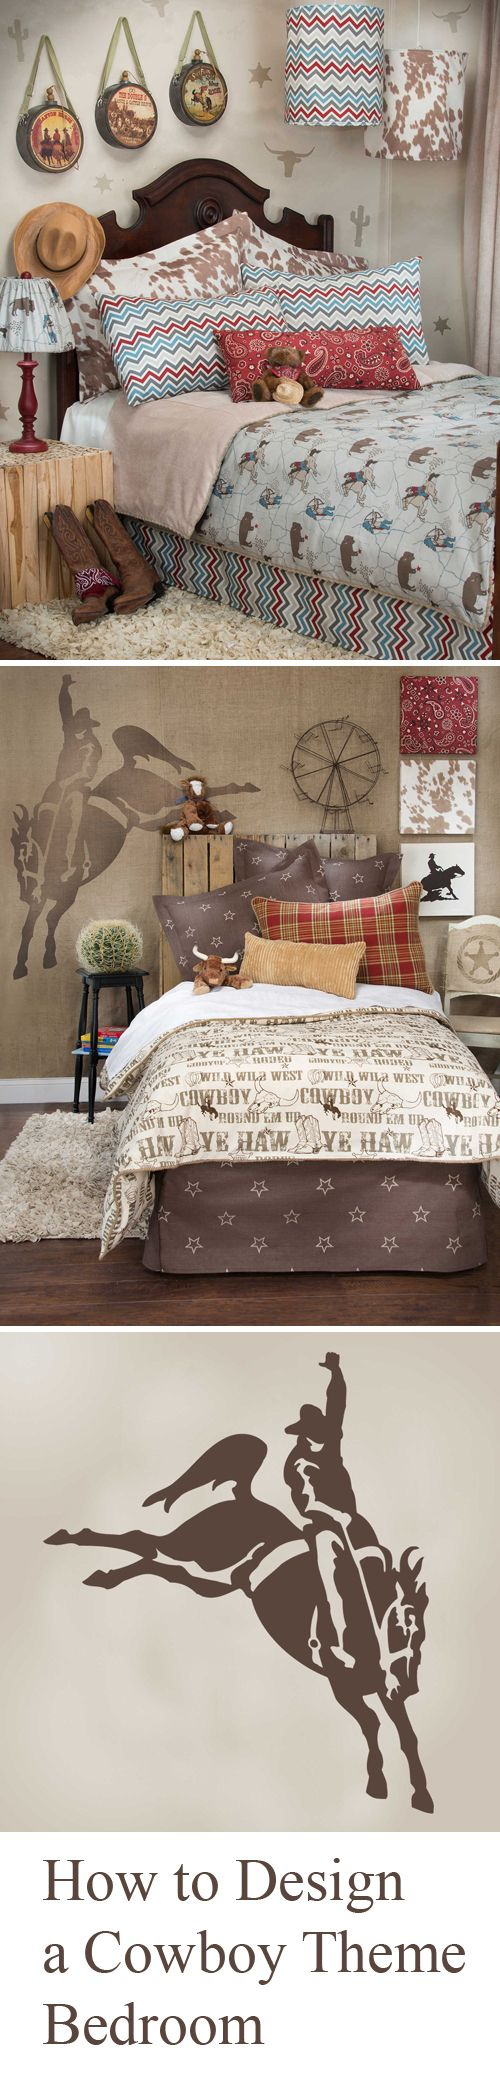 How to Design a Cowboy Theme Bedroom